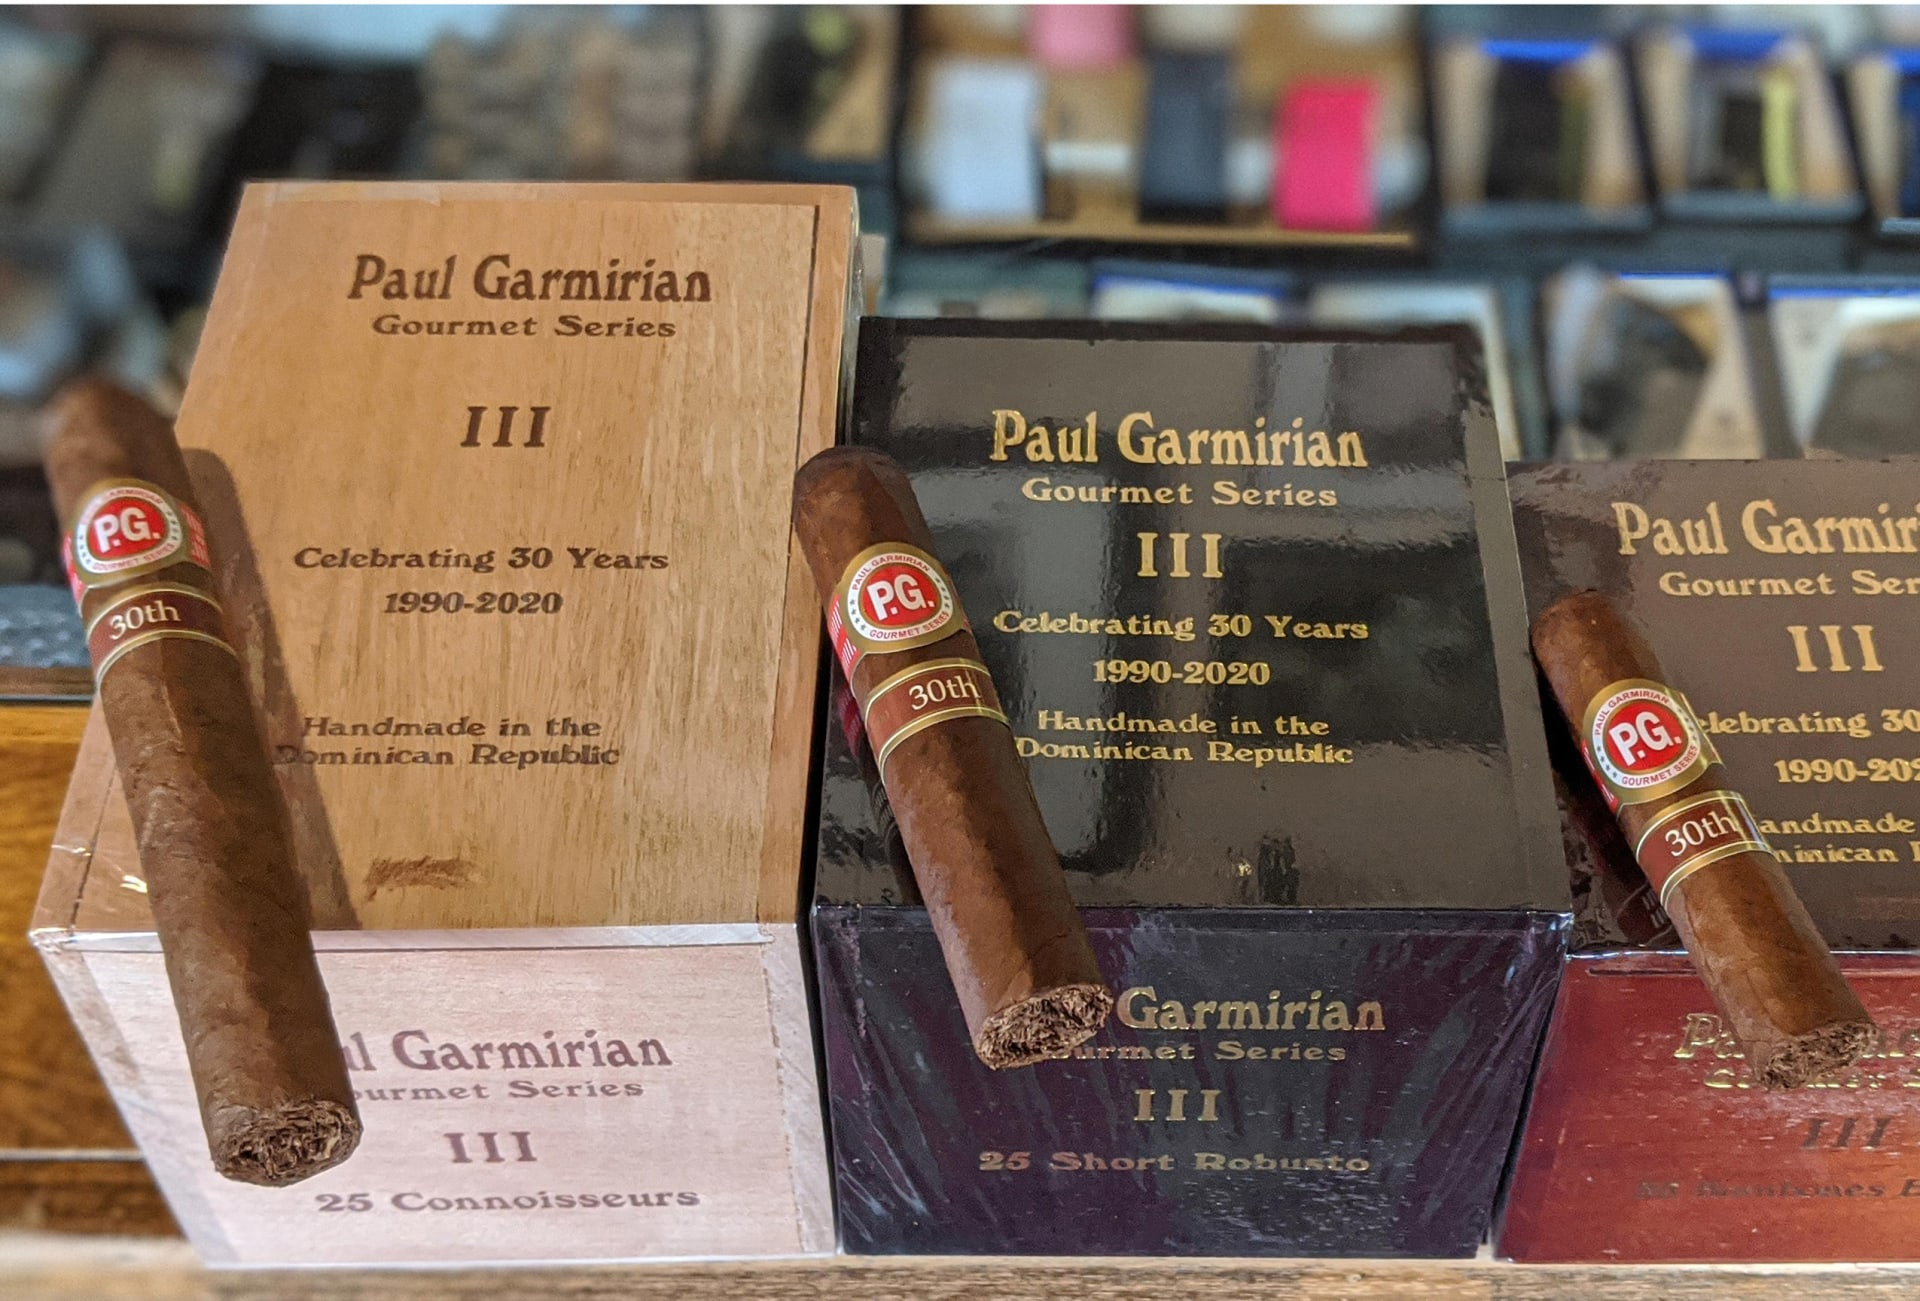 Paul Garmirian Releases PG Gourmet Series III 30th Anniversary Featured Image